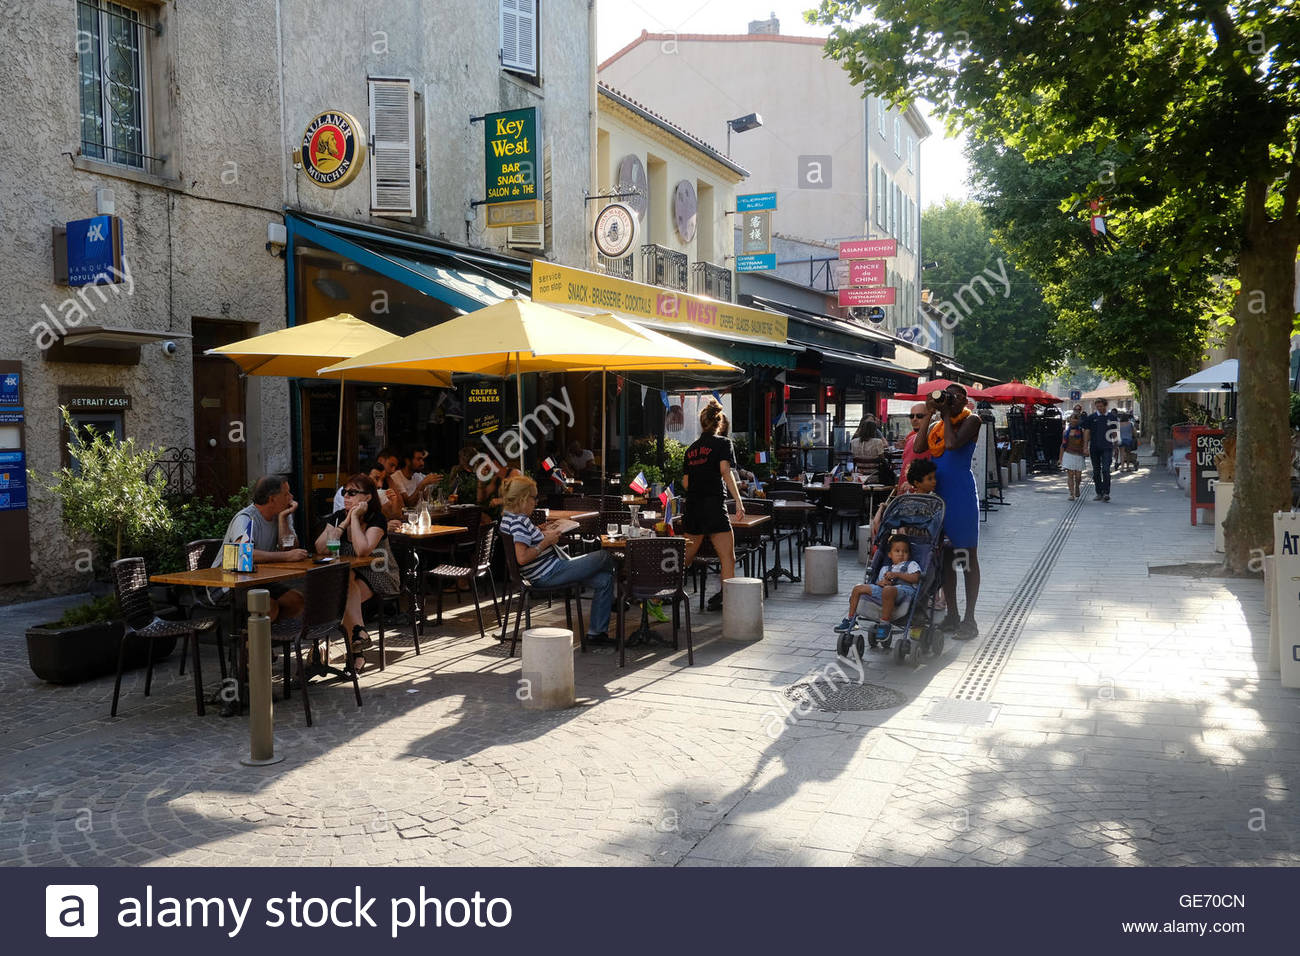 Salon Center Cormontreuil Alcohol France Tourists Stock Photos Alcohol France Tourists